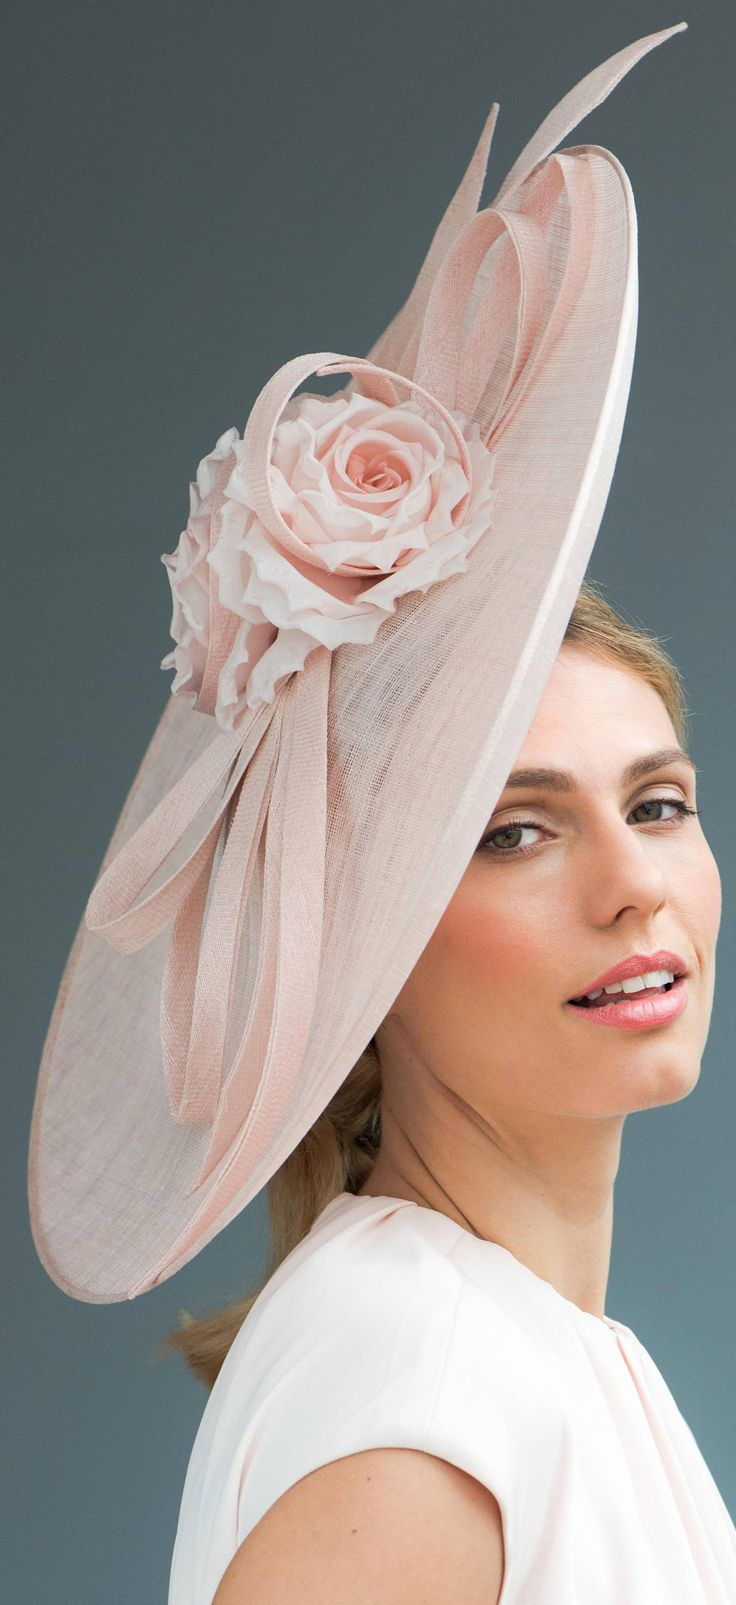 Big Showstopper Royal Ascot or Kentucky Derby, Dubai Races Hat. On Etsy. Great Etsy Find. Handmade Unique Millinery for Mother of the Bride or the Races Outfits. Pink Hats. Wedding Hats. Hat with Flowers. Photo opportunity. Big Hat for the Races outfit ideas. #royalascot #kentuckyderby #derbyhats #racingfashion #fashionsonthefield #hatsfortheraces #millinery #handmadeisbest #etsy #etsyfinds #affiliatelink #fashion #fashionista #ootd #floralfashion #saucerhats #fascinators...